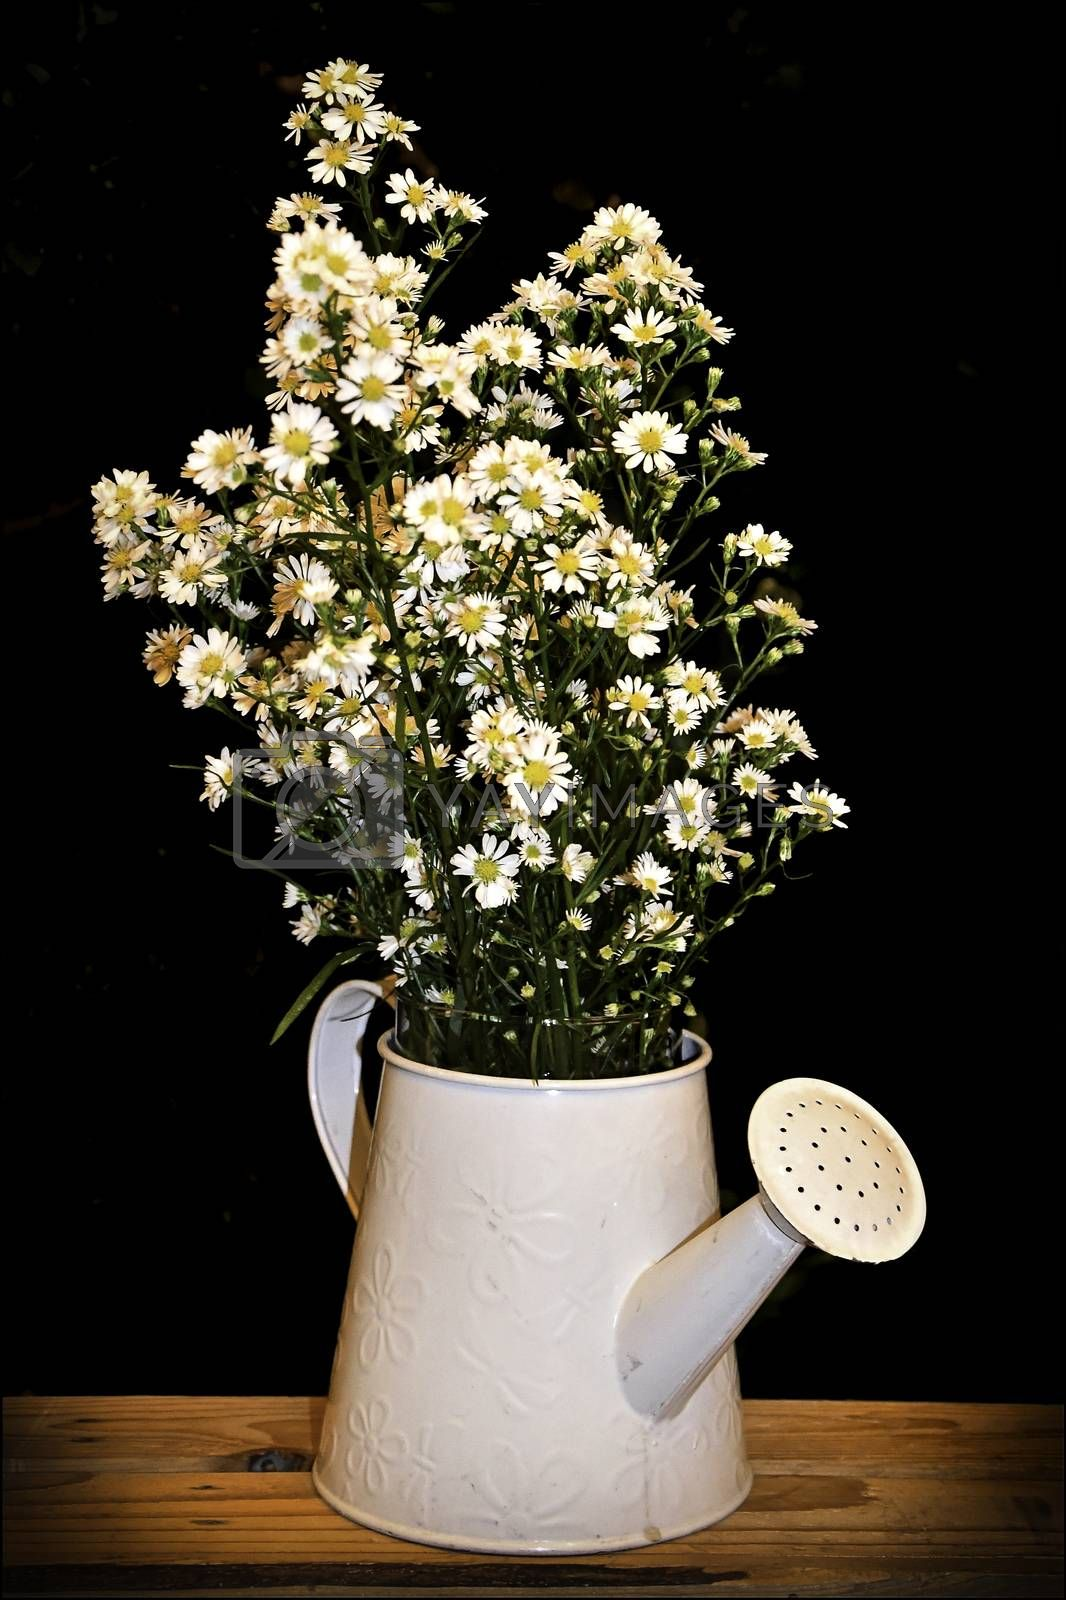 A bouquet of wild camomile and daisies in a white enamelled watering can. Reminiscent of a rustic country cottage garden scene.